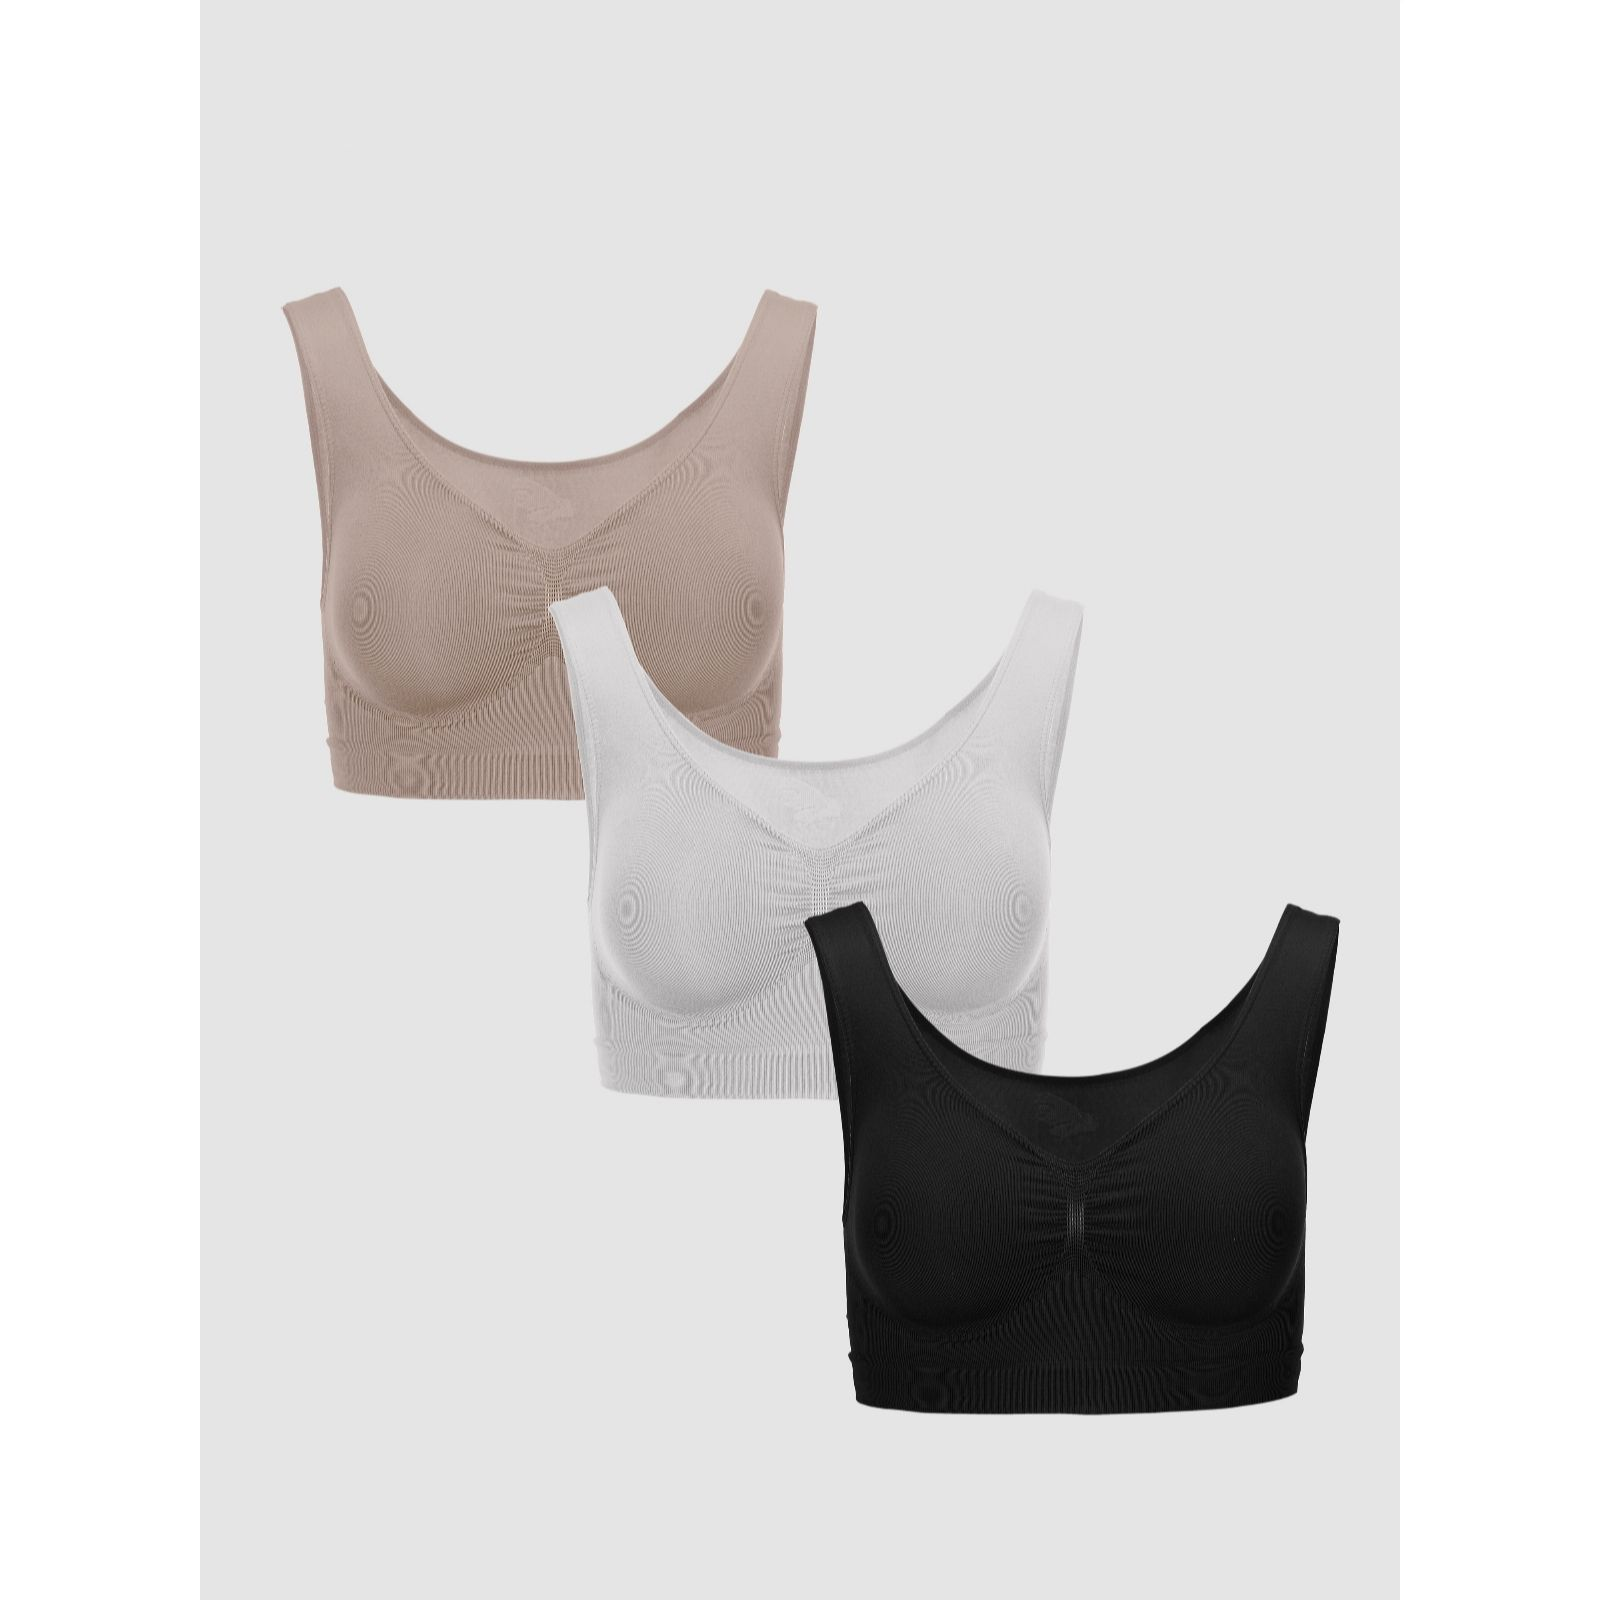 5346437b57bc3 Vercella Vita Medium Control Essentials Bra Pack of 3 - QVC UK